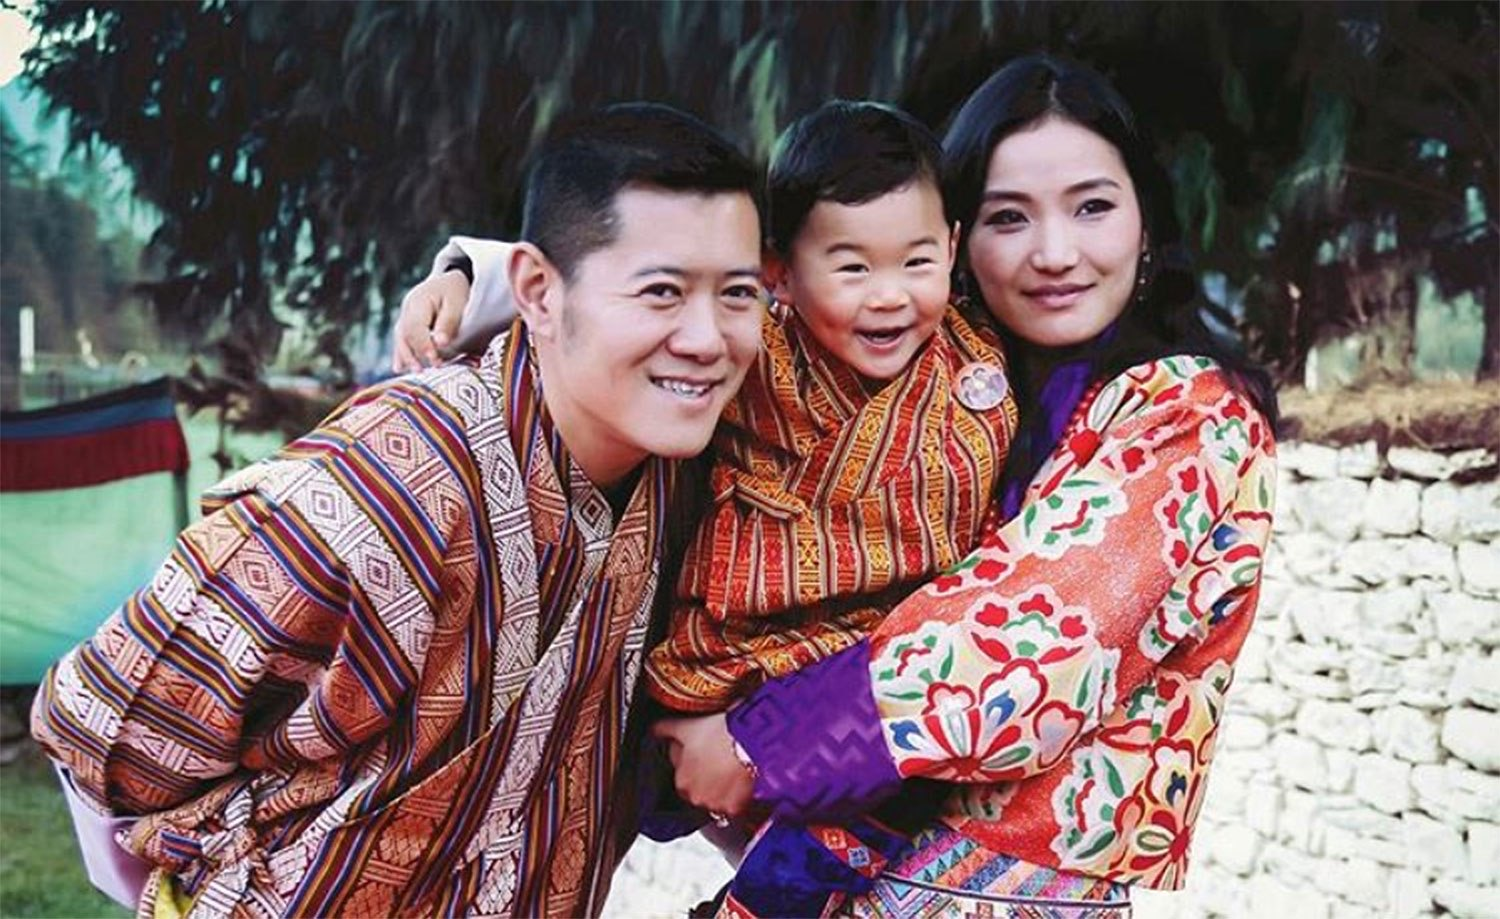 Royal family of Bhutan.